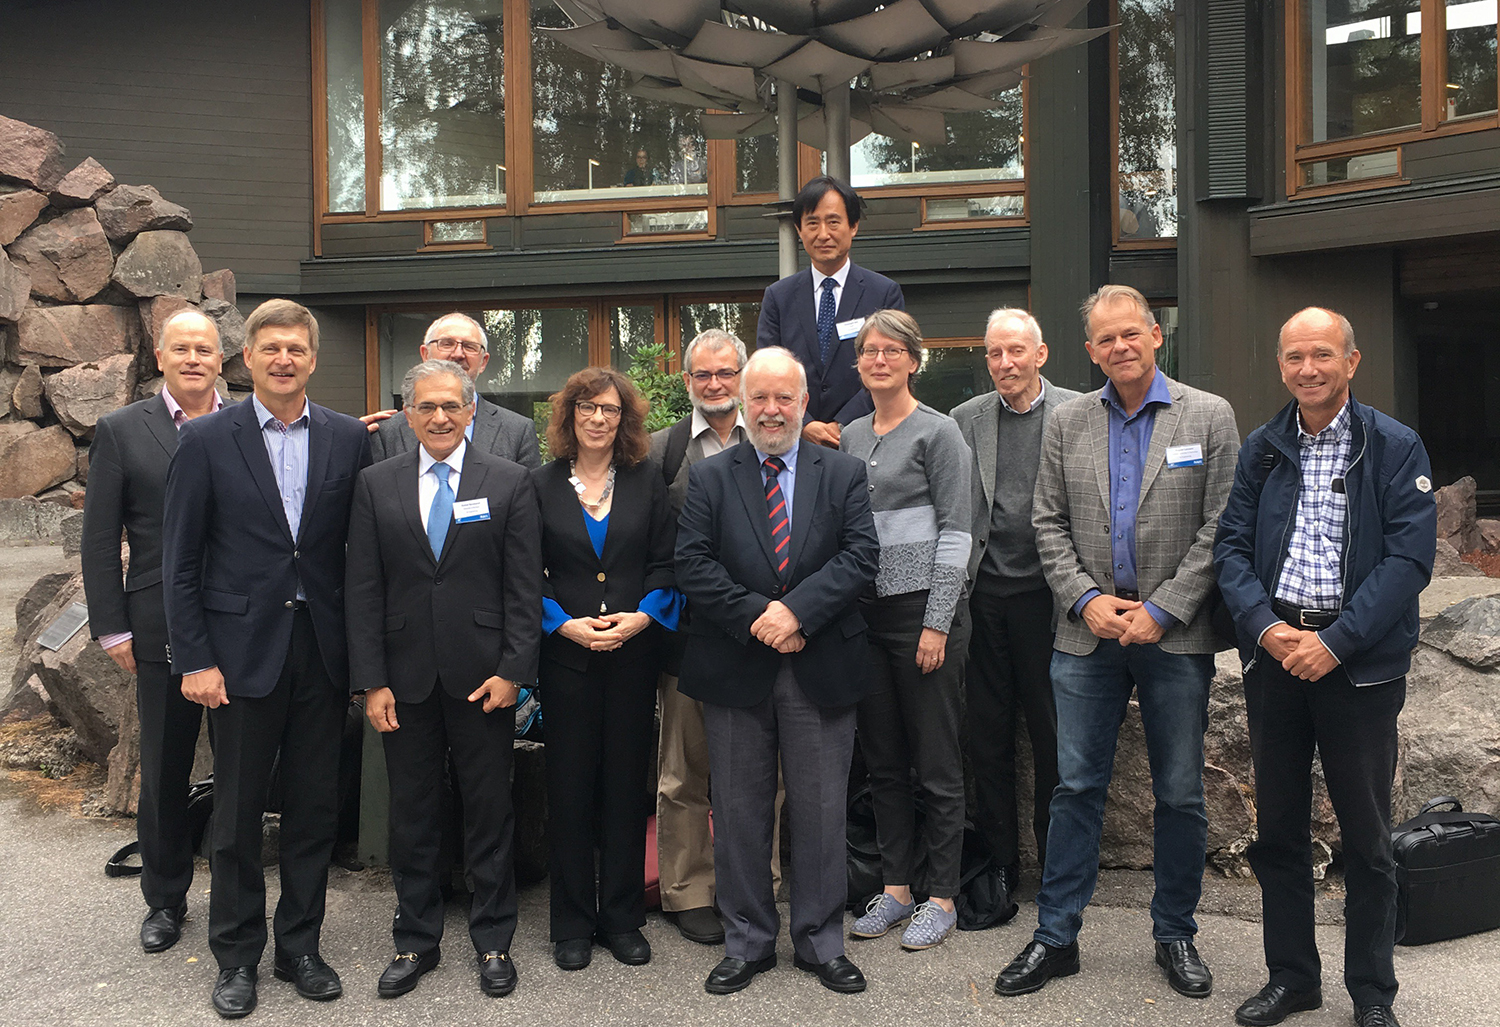 Professor Sarabandi (3rd from the right) chaired a panel to review and assess Research, Art, and Impact at Aalto University in Finland. To his right are University President Ilkka Niemela and Dean of Engineering Gary Marquis.